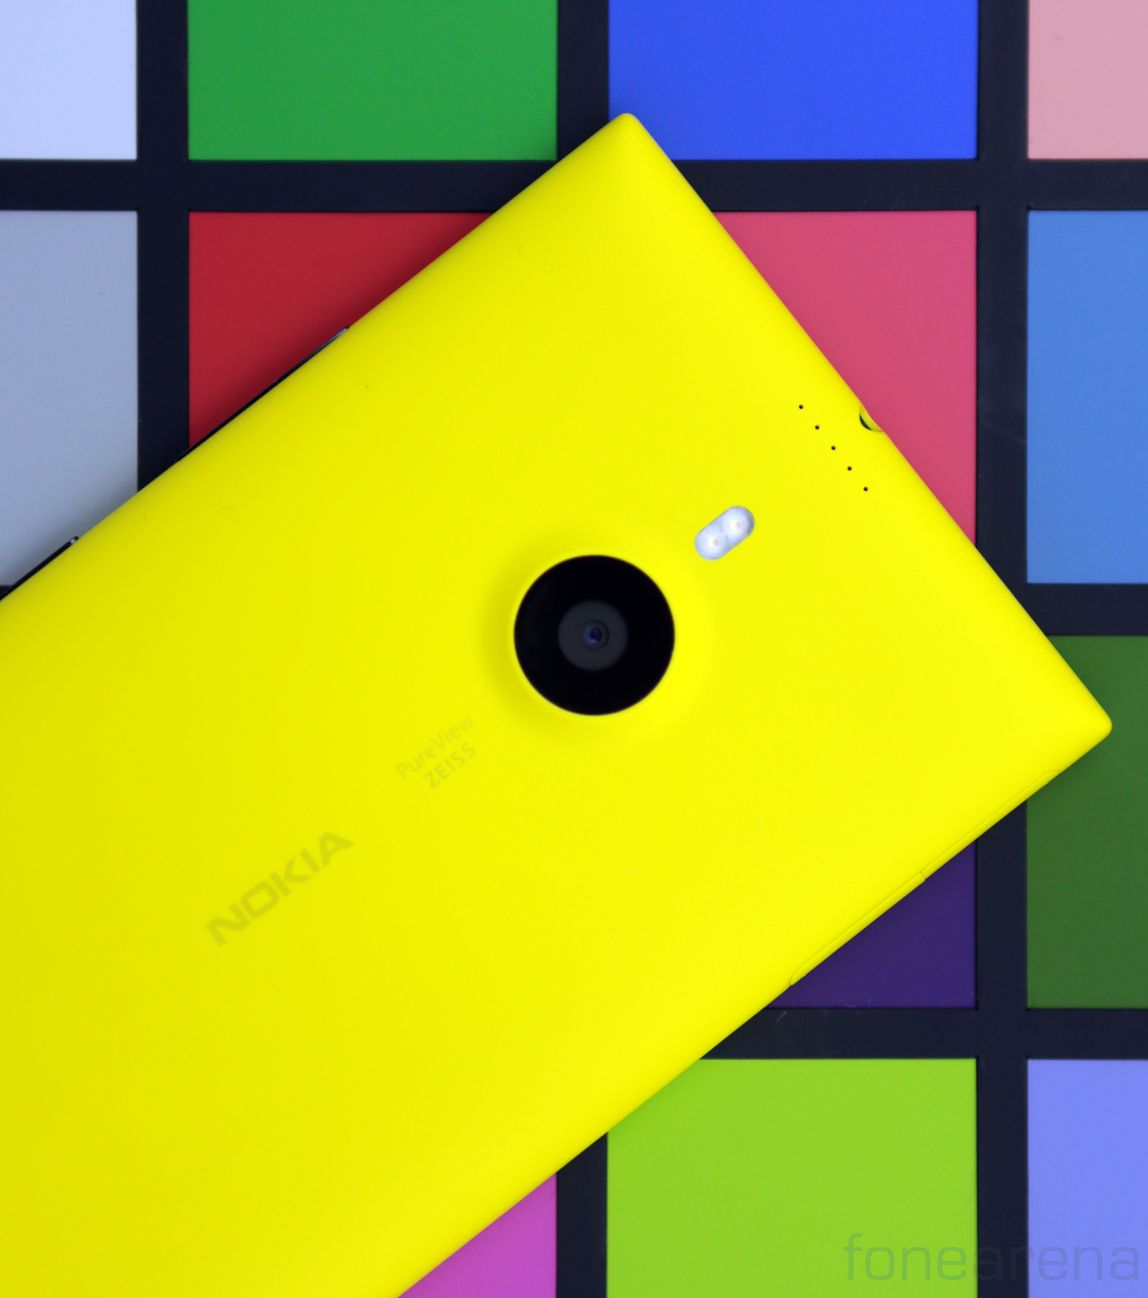 nokia-lumia-1520-review-23